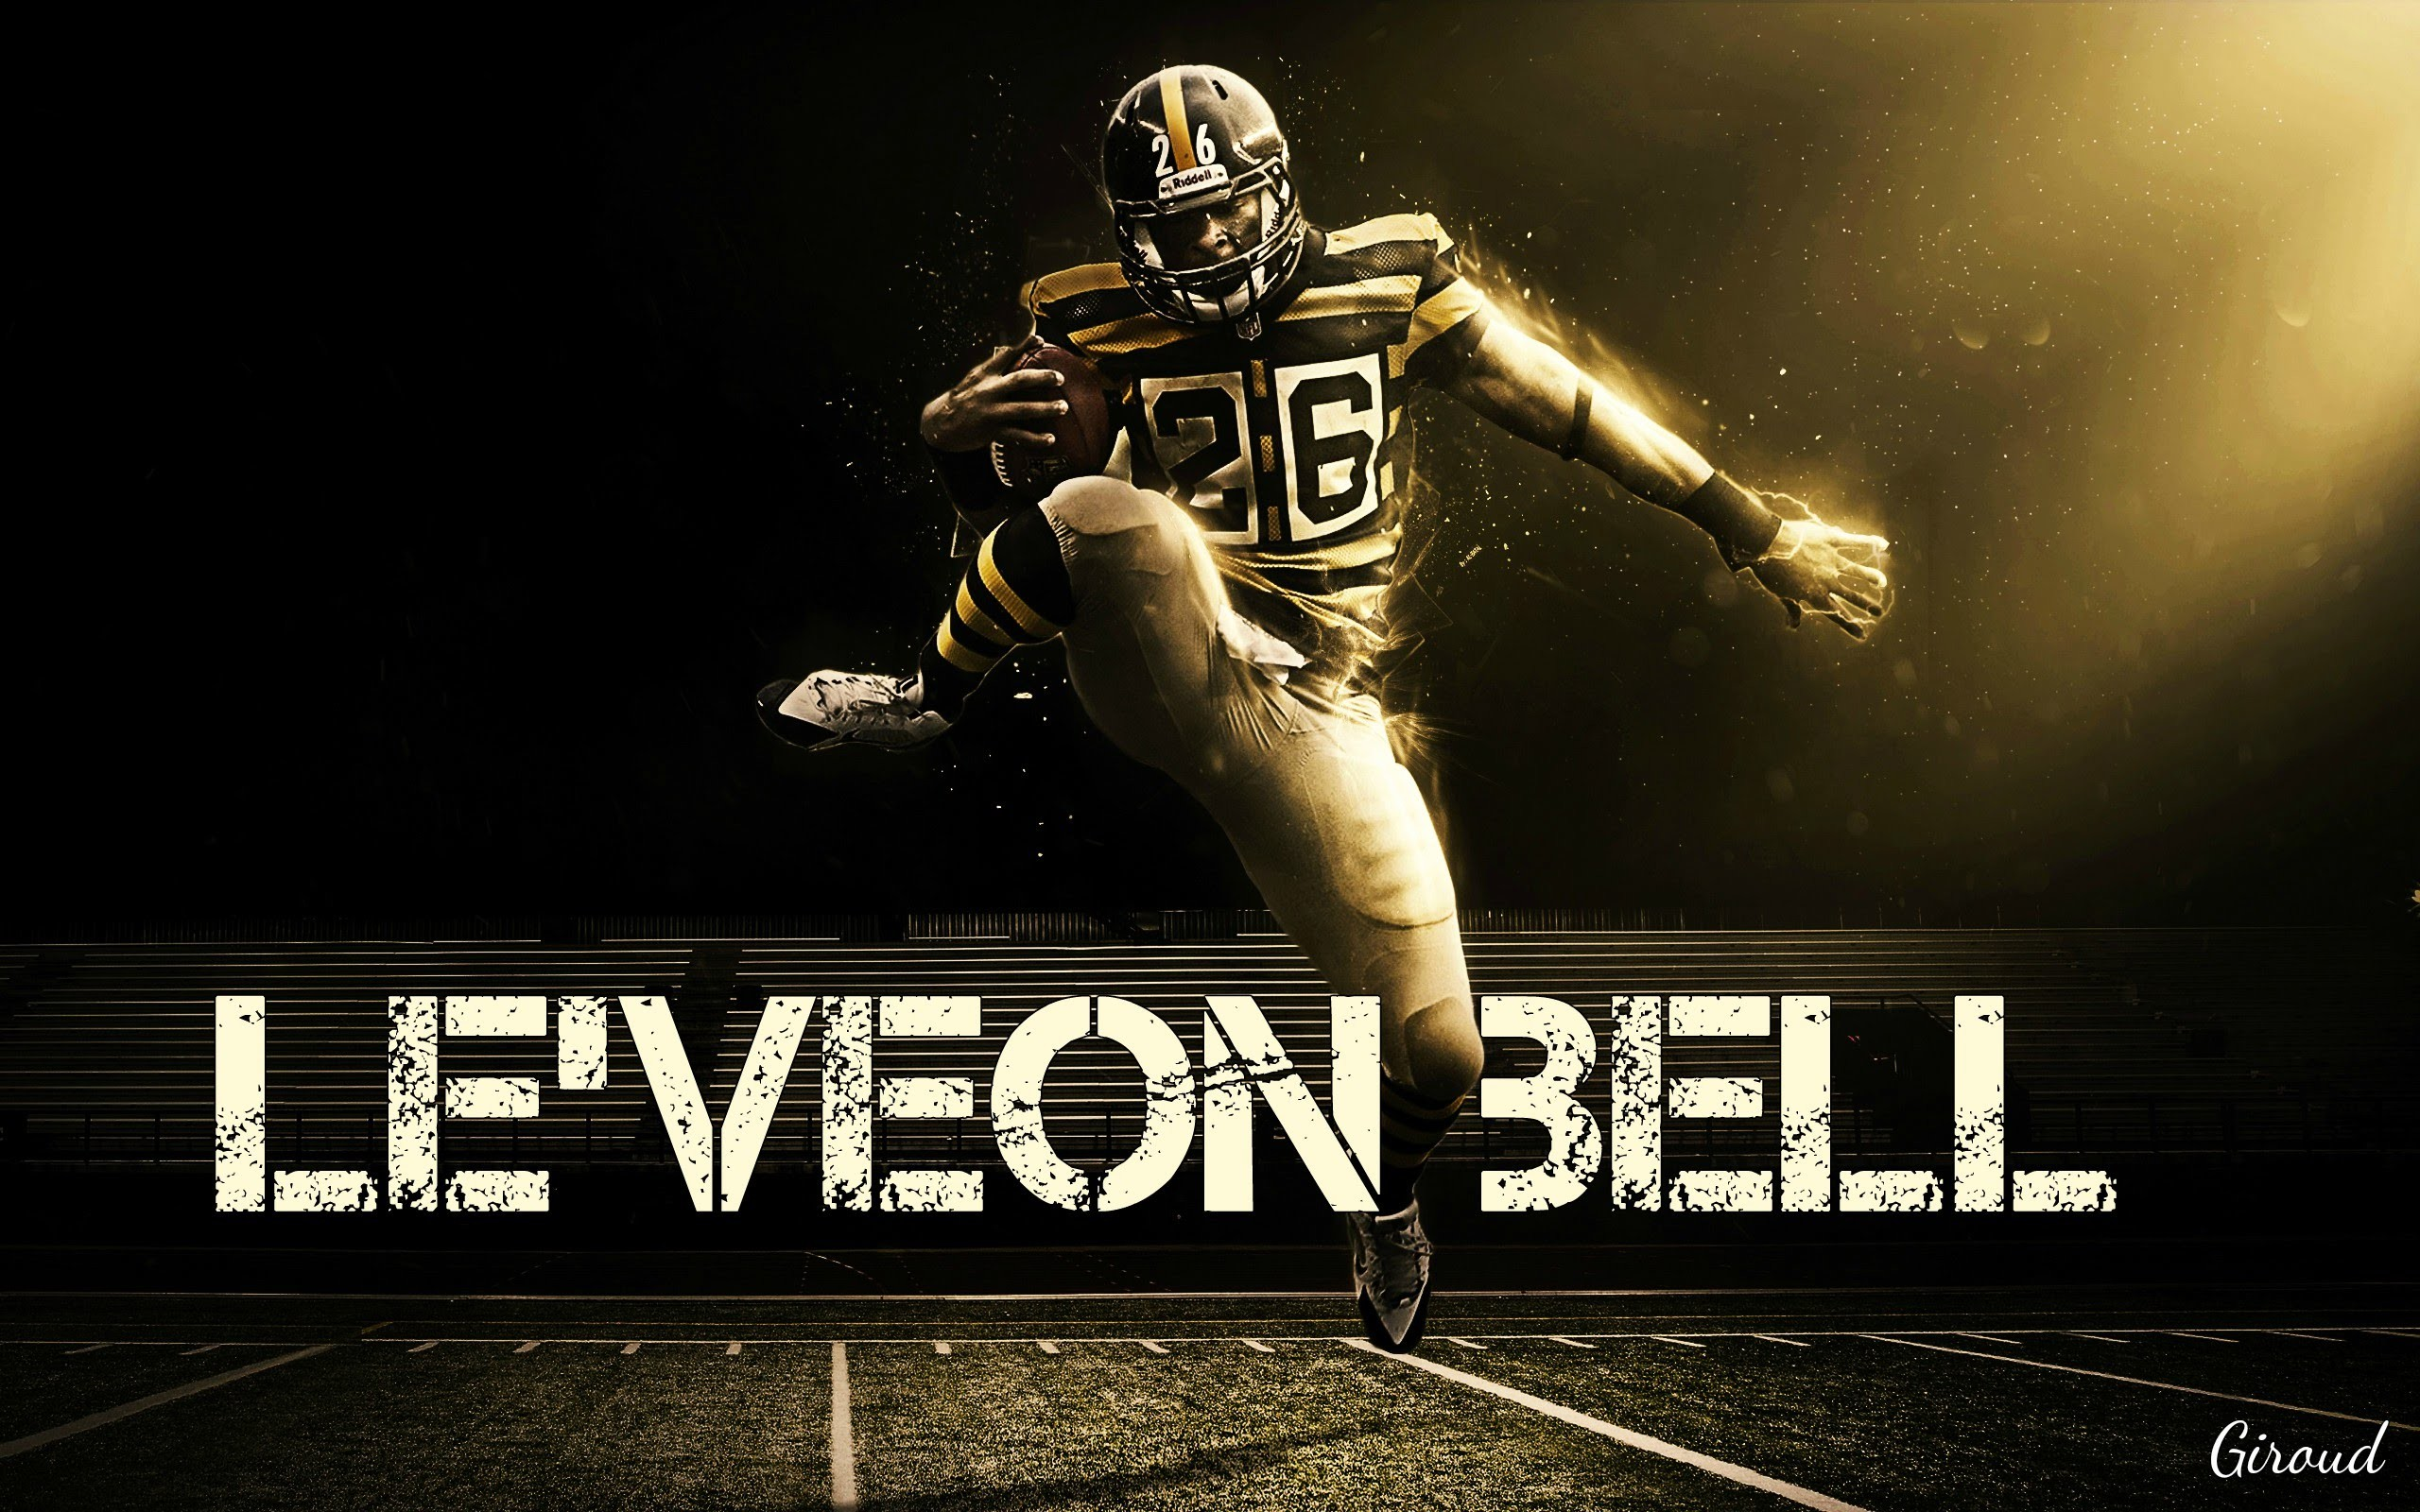 Res: 2560x1600, Image result for leveon bell poster free use